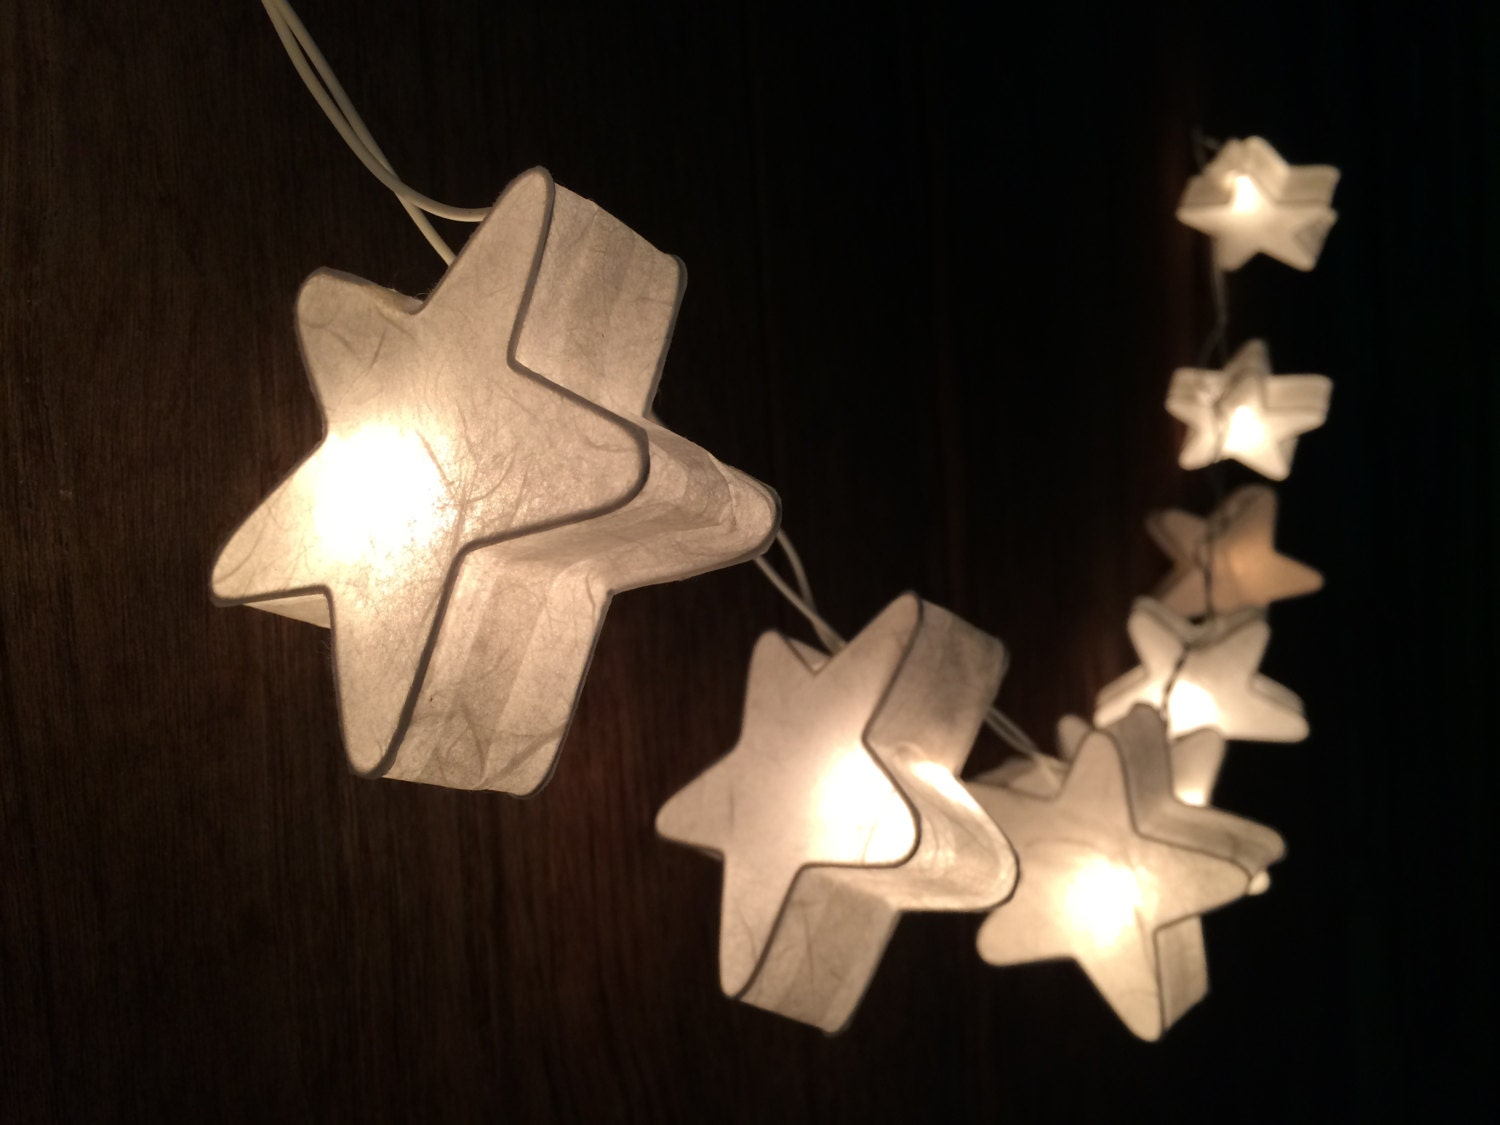 Paper Lantern String Lights Bedroom : 20xWhite star paper string light for decor bedroom